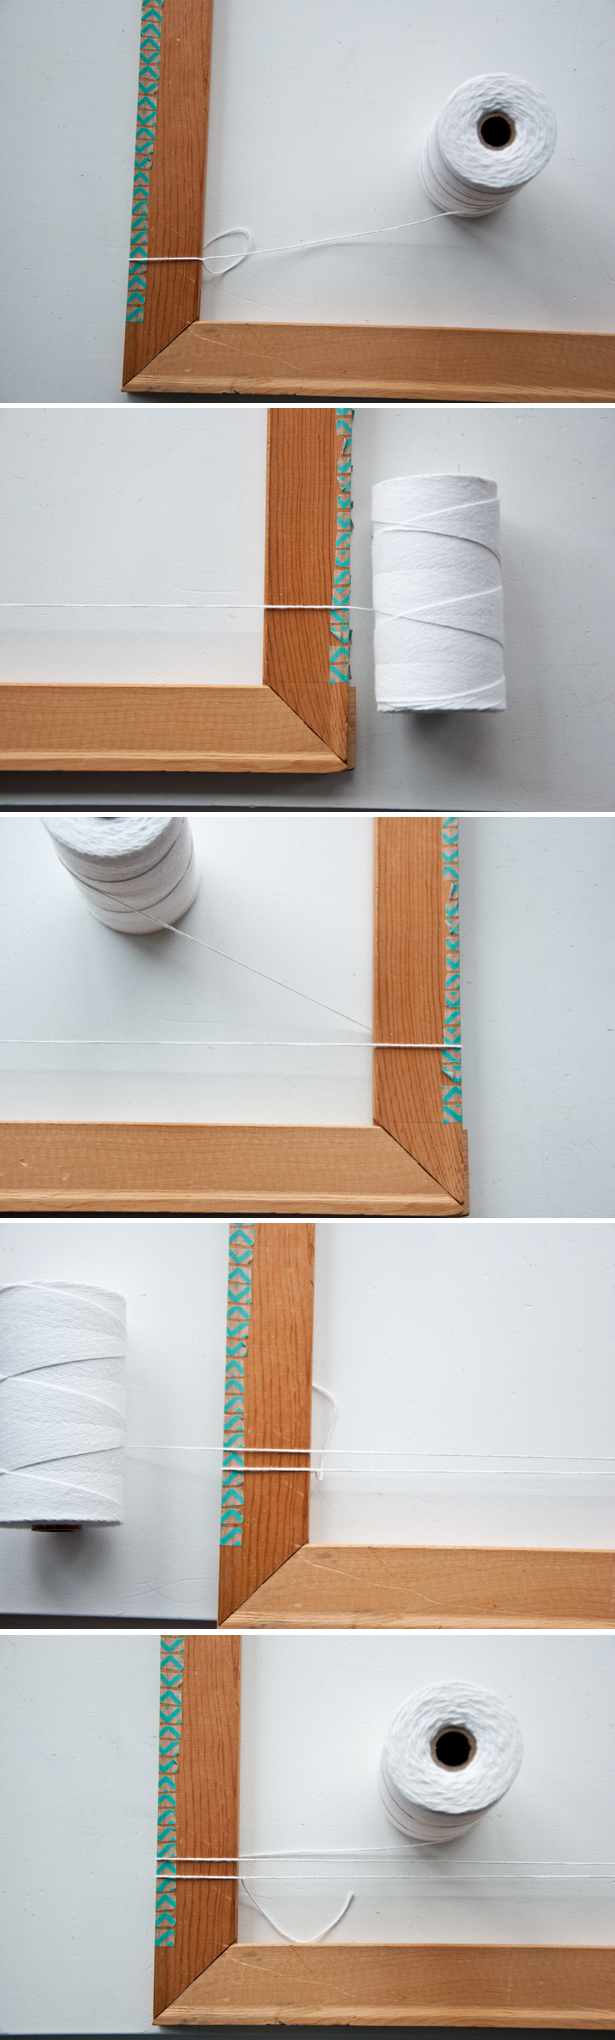 Detailed How To Warp a Frame Loom | The Weaving Loom